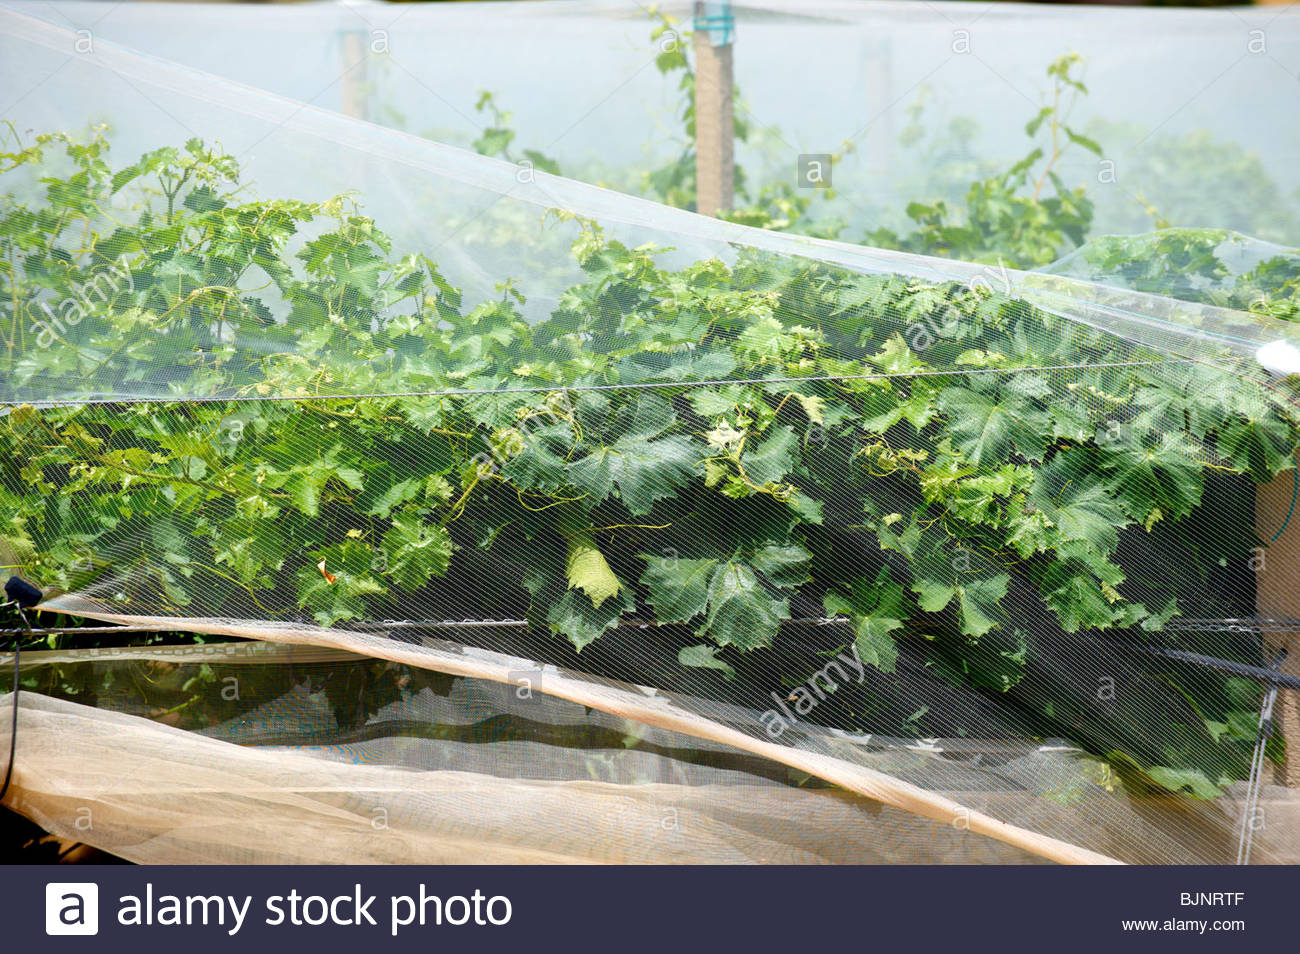 Vines covered in protective netting, Sicily - Stock Image